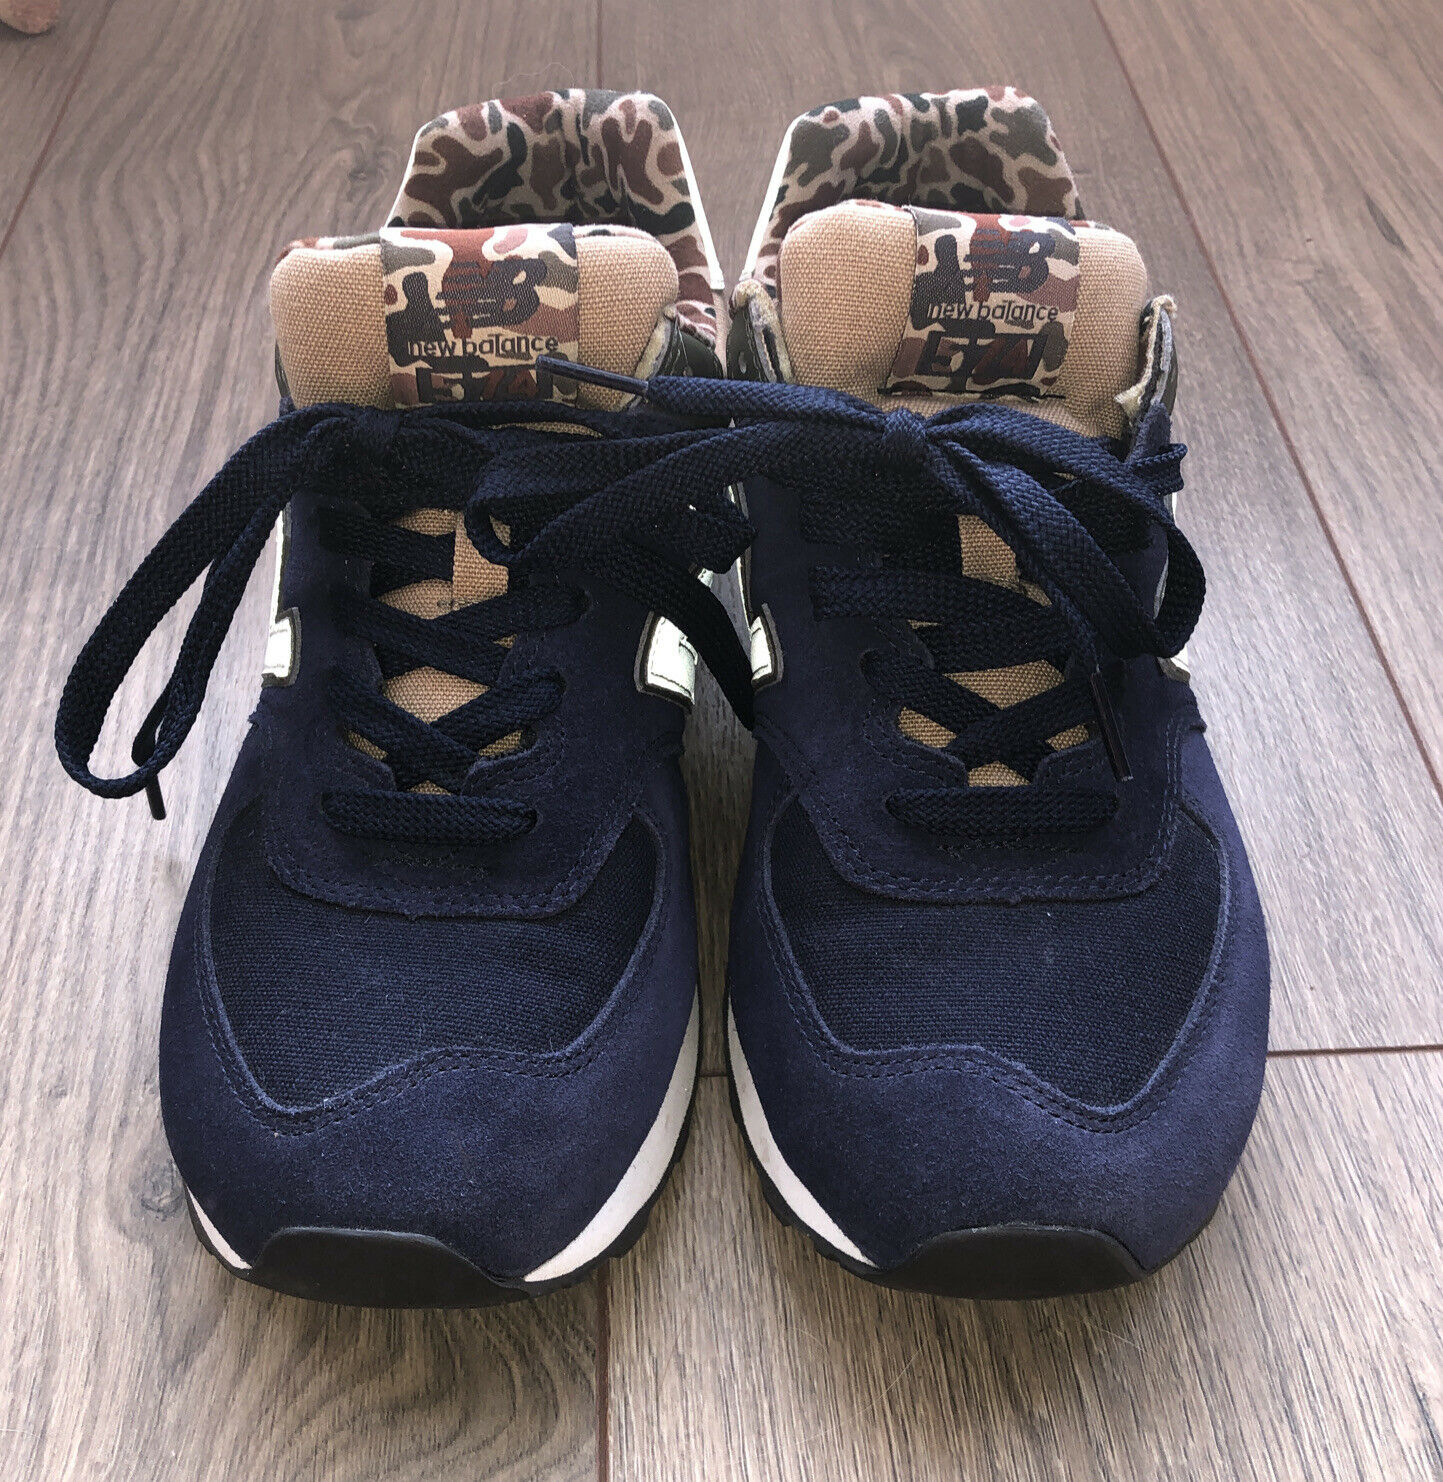 New balance ML574 HVA trainers in Blue with Camouflage print Size 8 Excellent